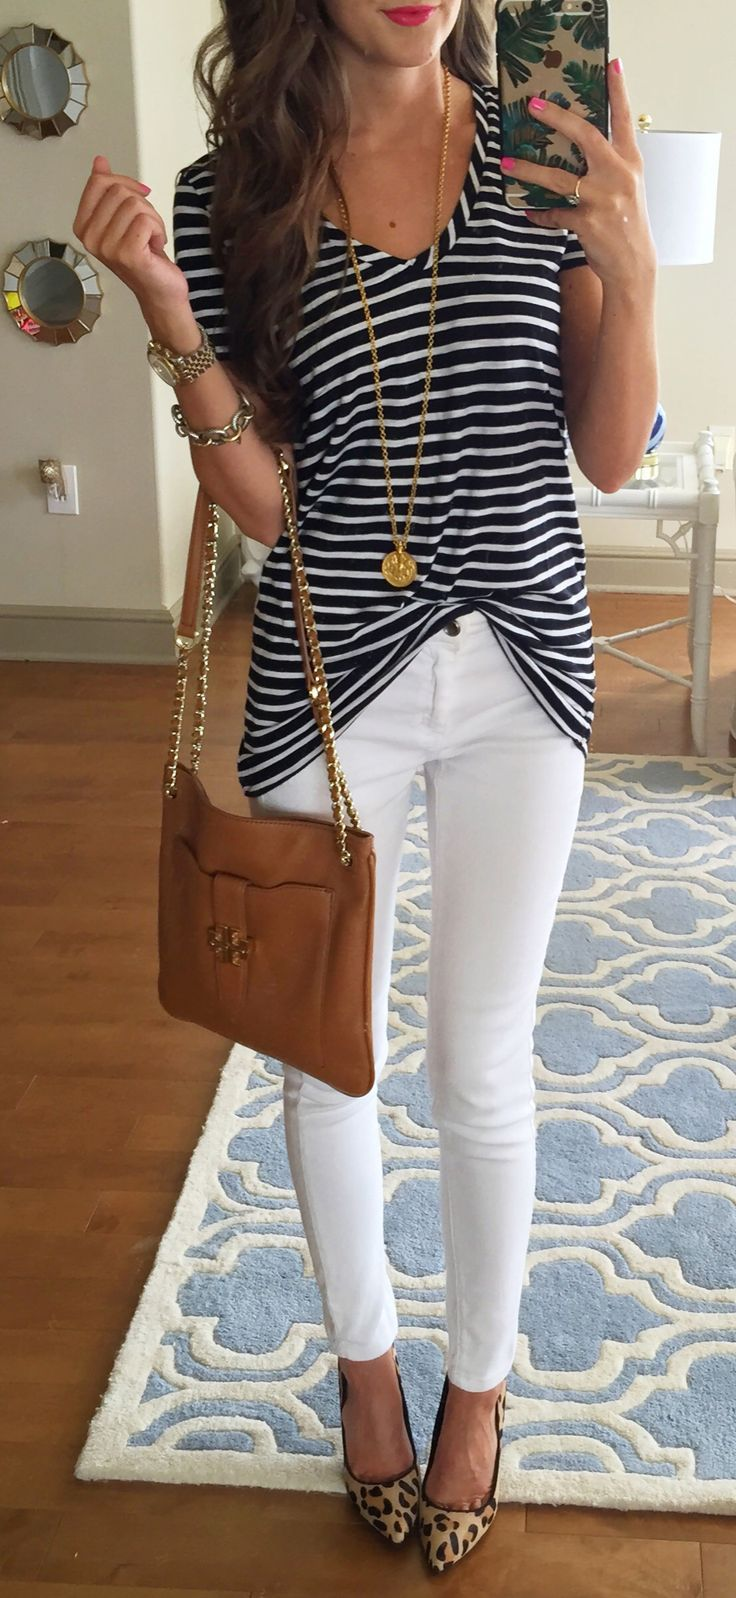 17 Best ideas about White Jeans on Pinterest | Jeans converse ...